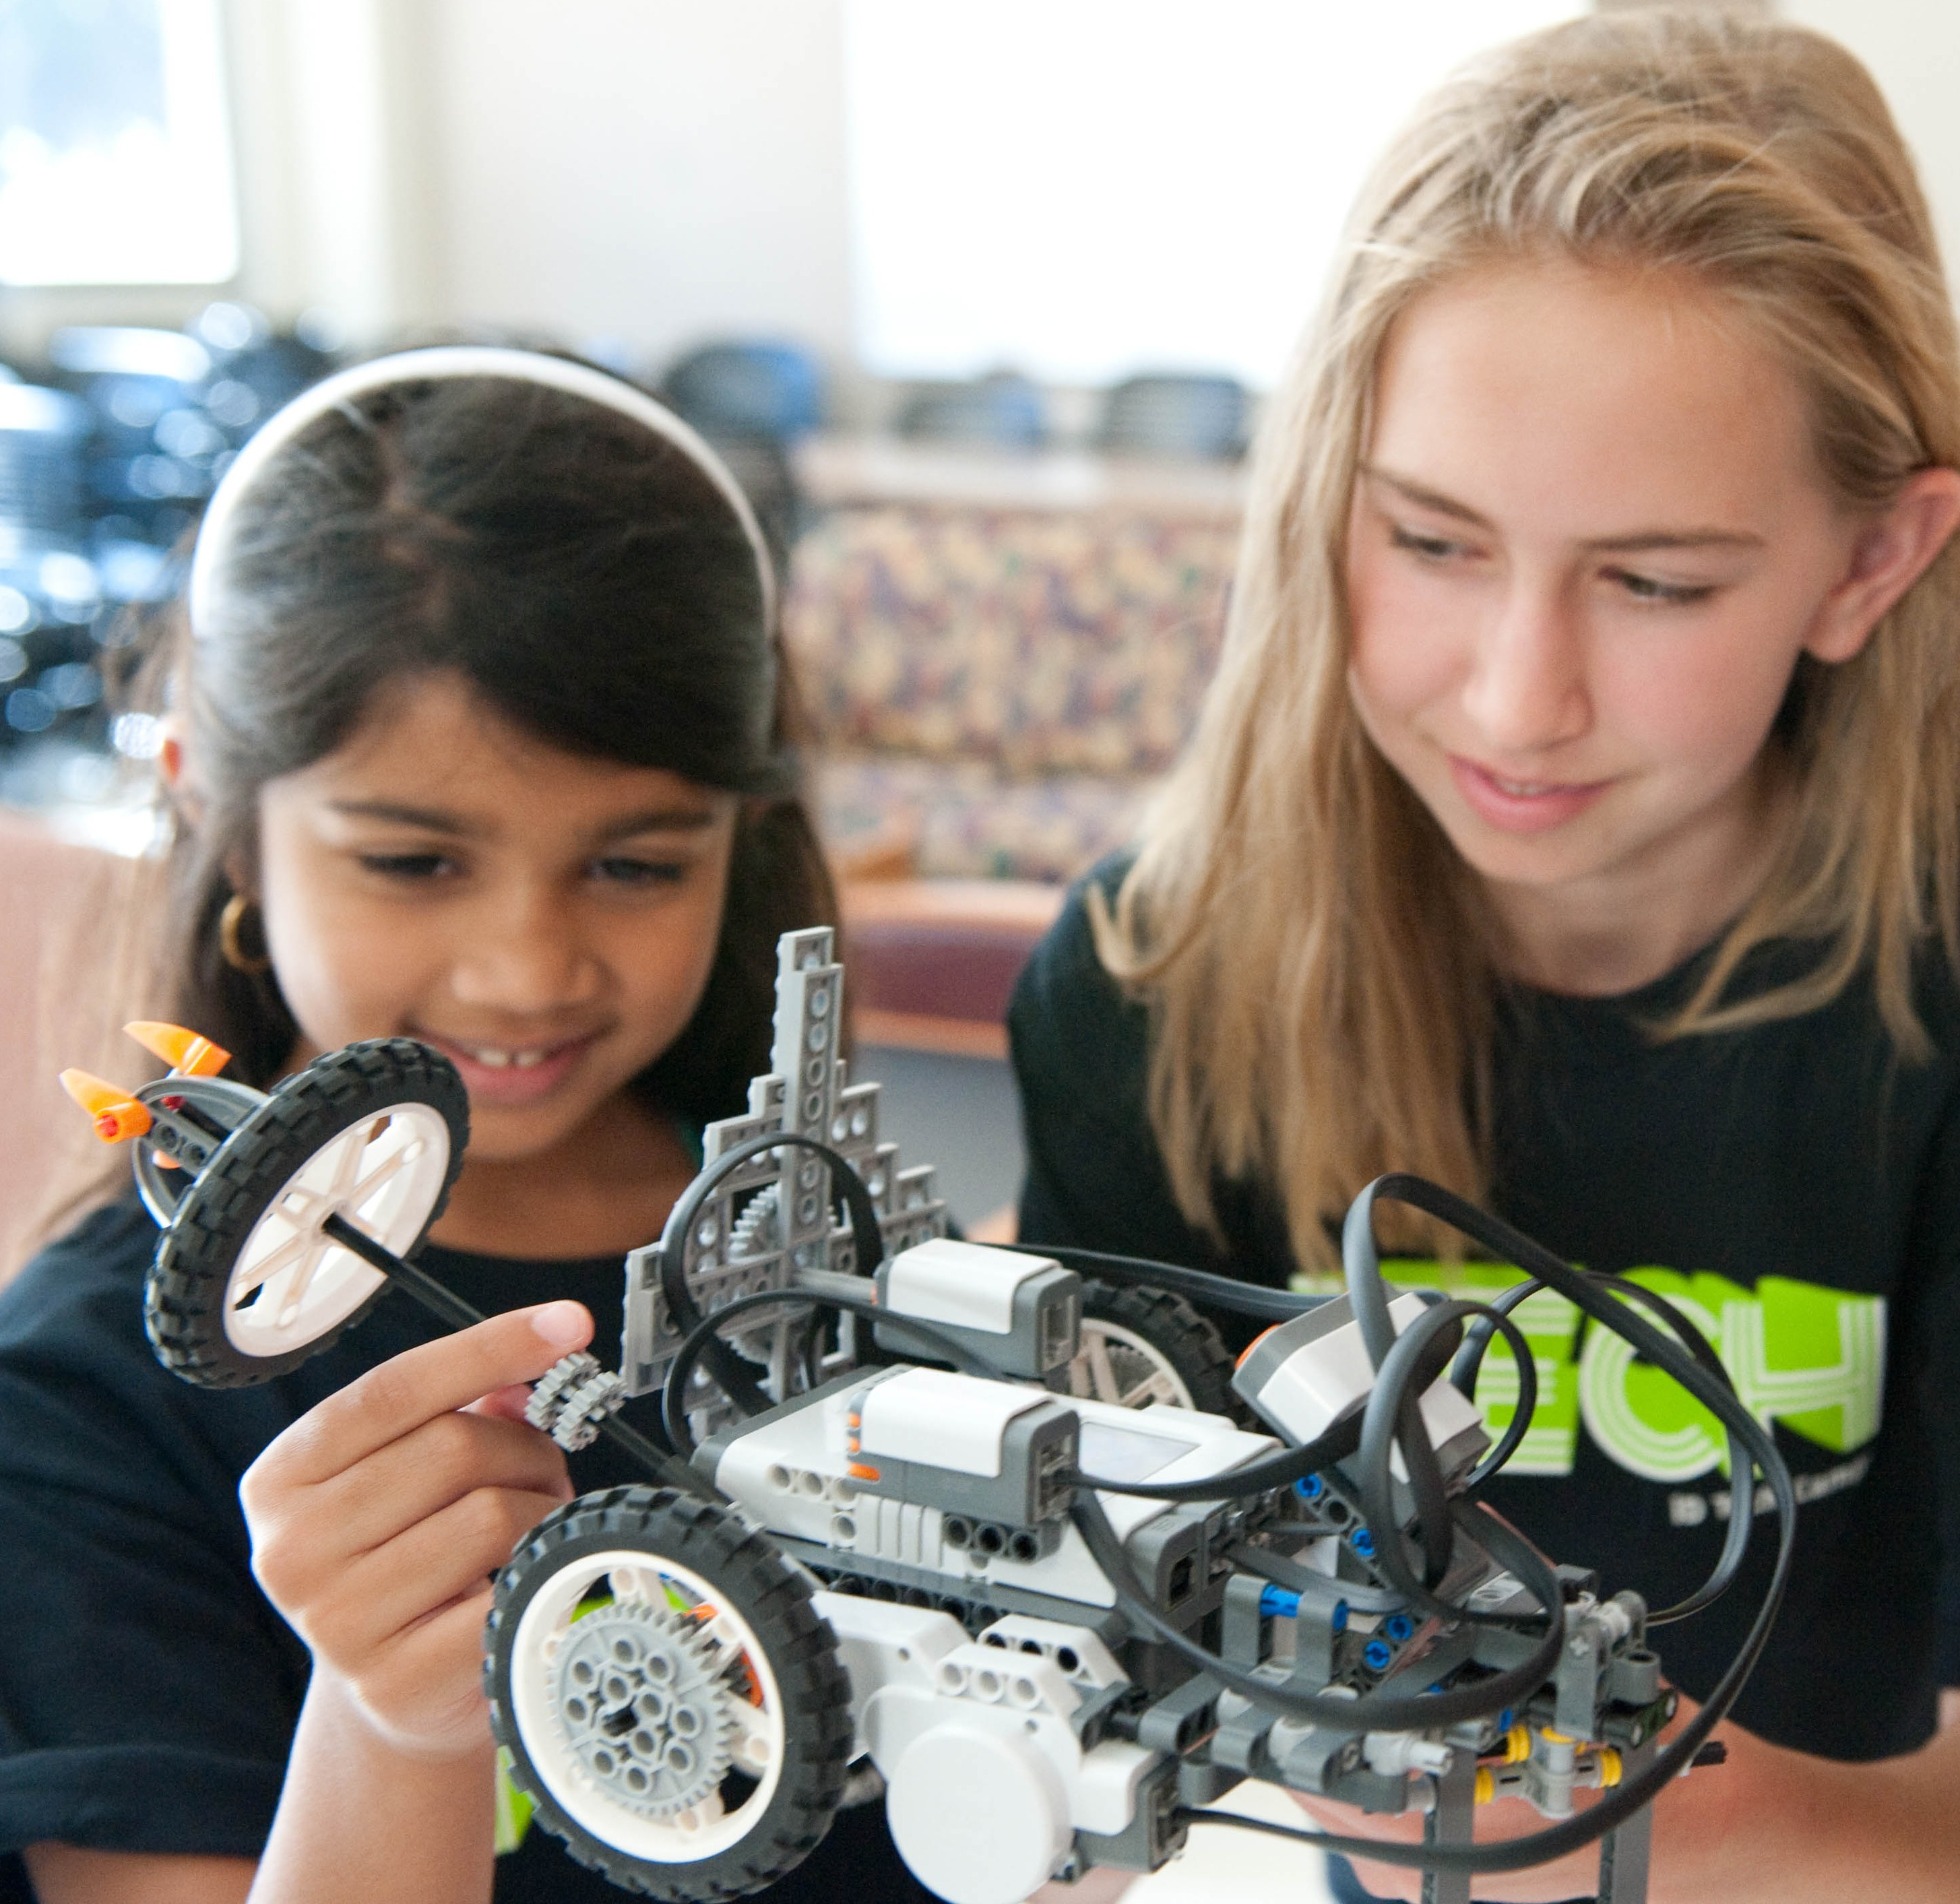 Stem Programs For Teens: Coding And Programming–At Summer Camp?